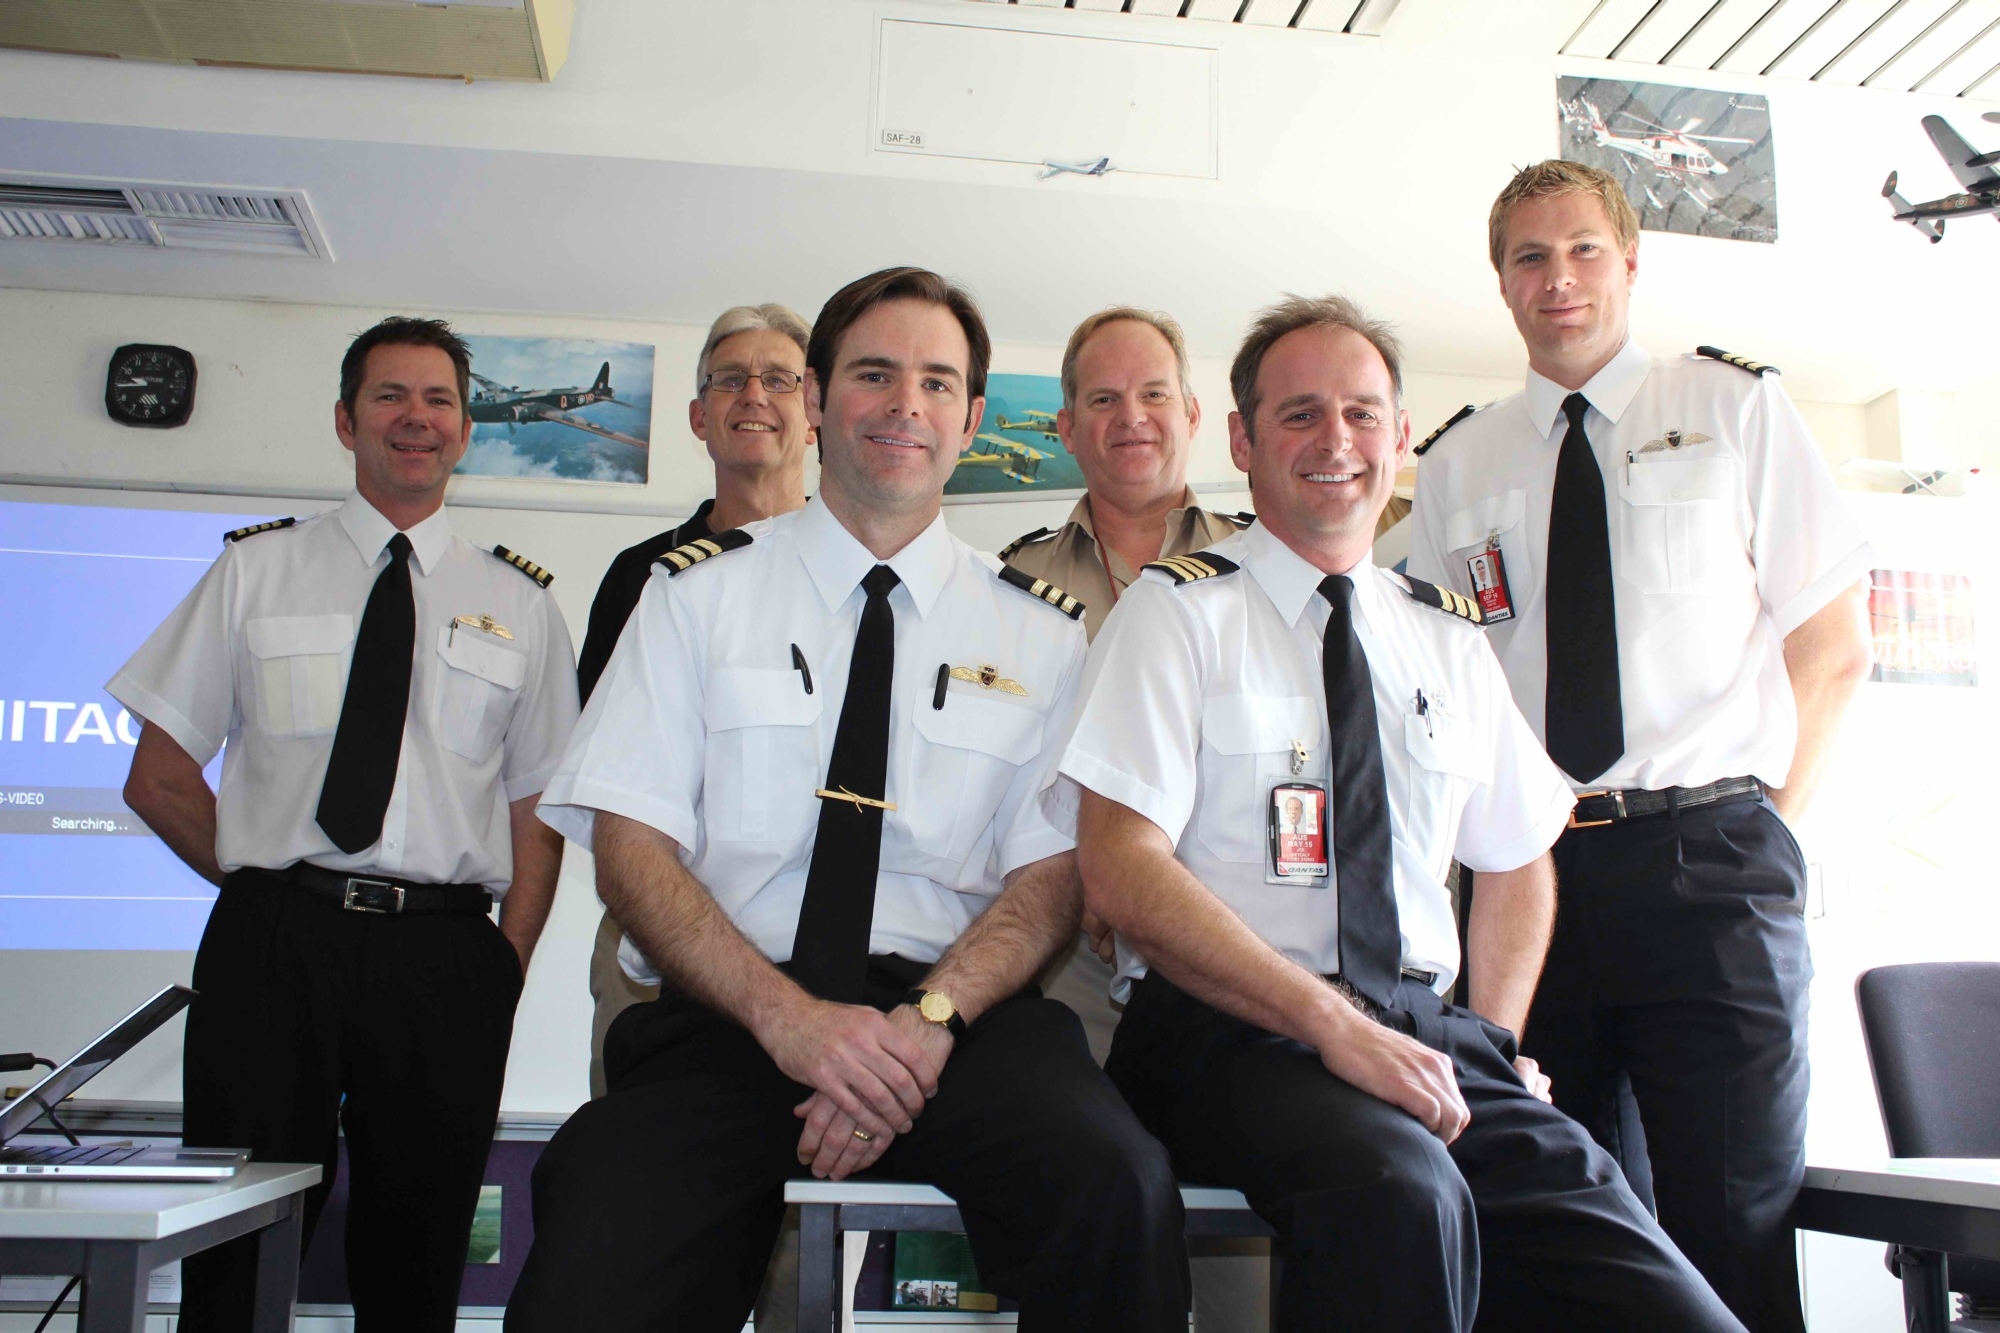 Capt Yale Simpson (1988 graduate), Aviation teacher Brendan Wallis, Capt Stuart McWilliam (1995 graduate), Aviation program coordinator Randall Brink, Capt Joe Metcalf (1988 graduate), Capt Graham Watts (1997 graduate). Picture: Emma Clayton